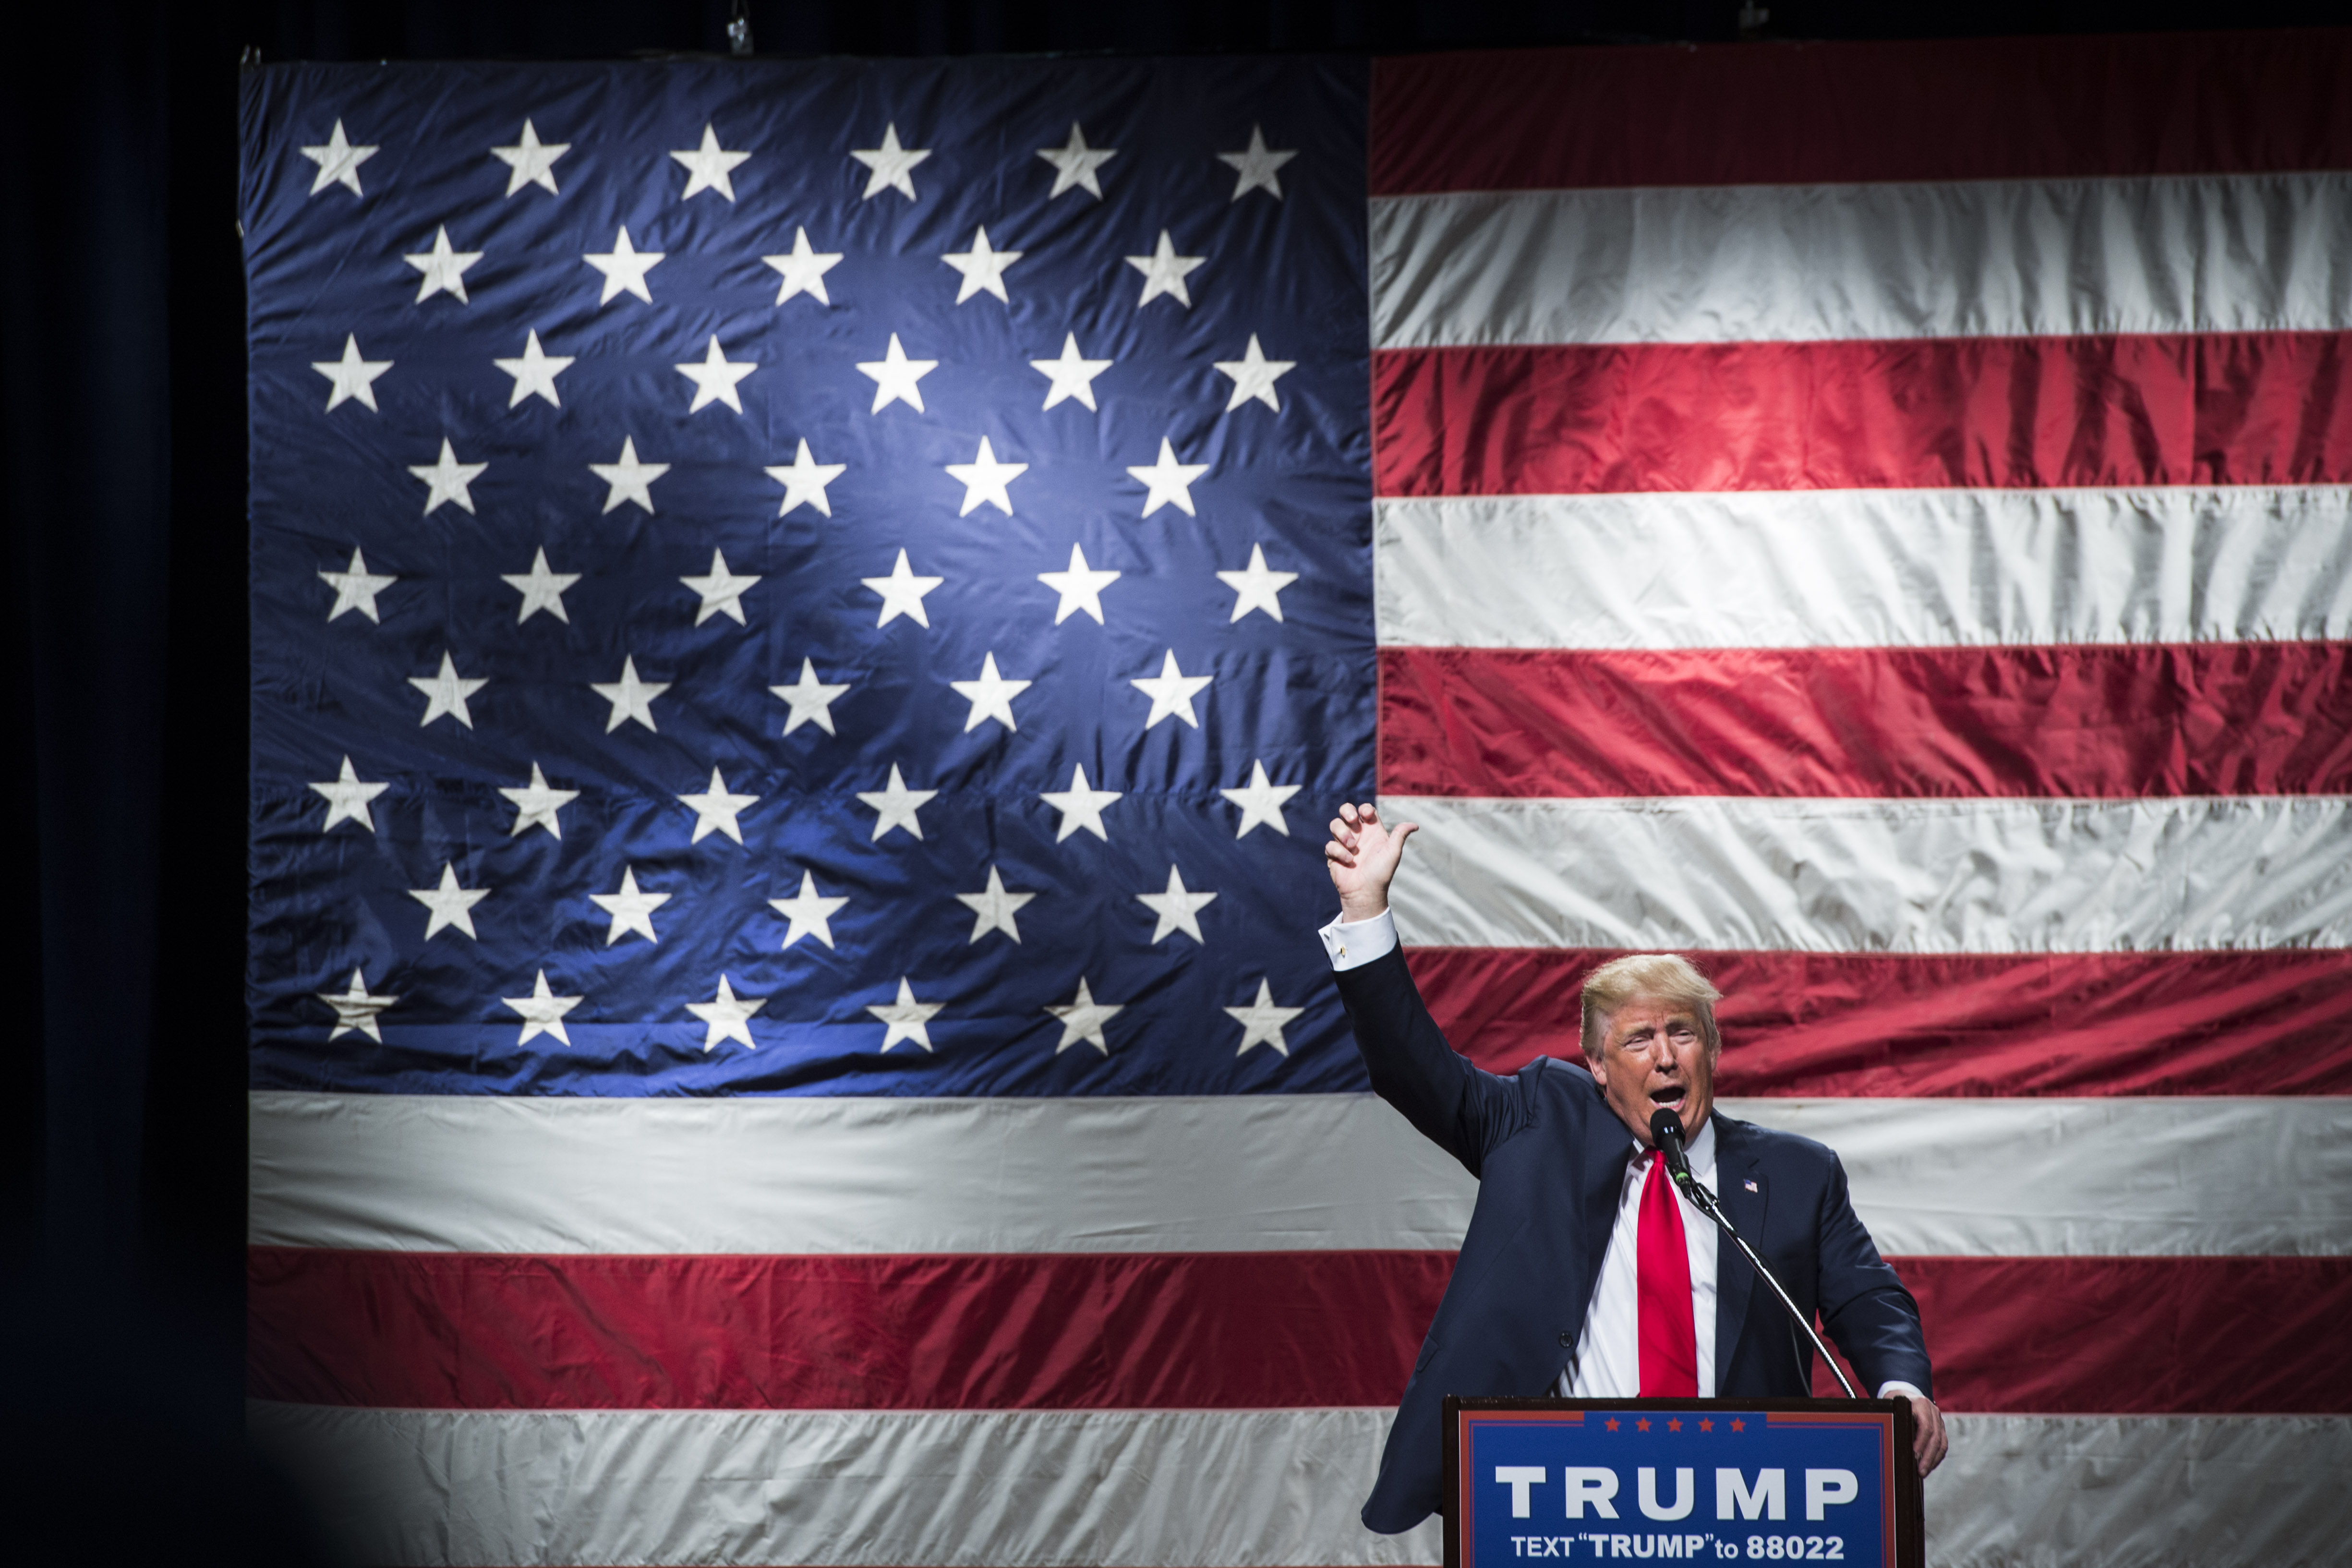 Republican presidential candidate Donald Trump in Poughkeepsie, NY.